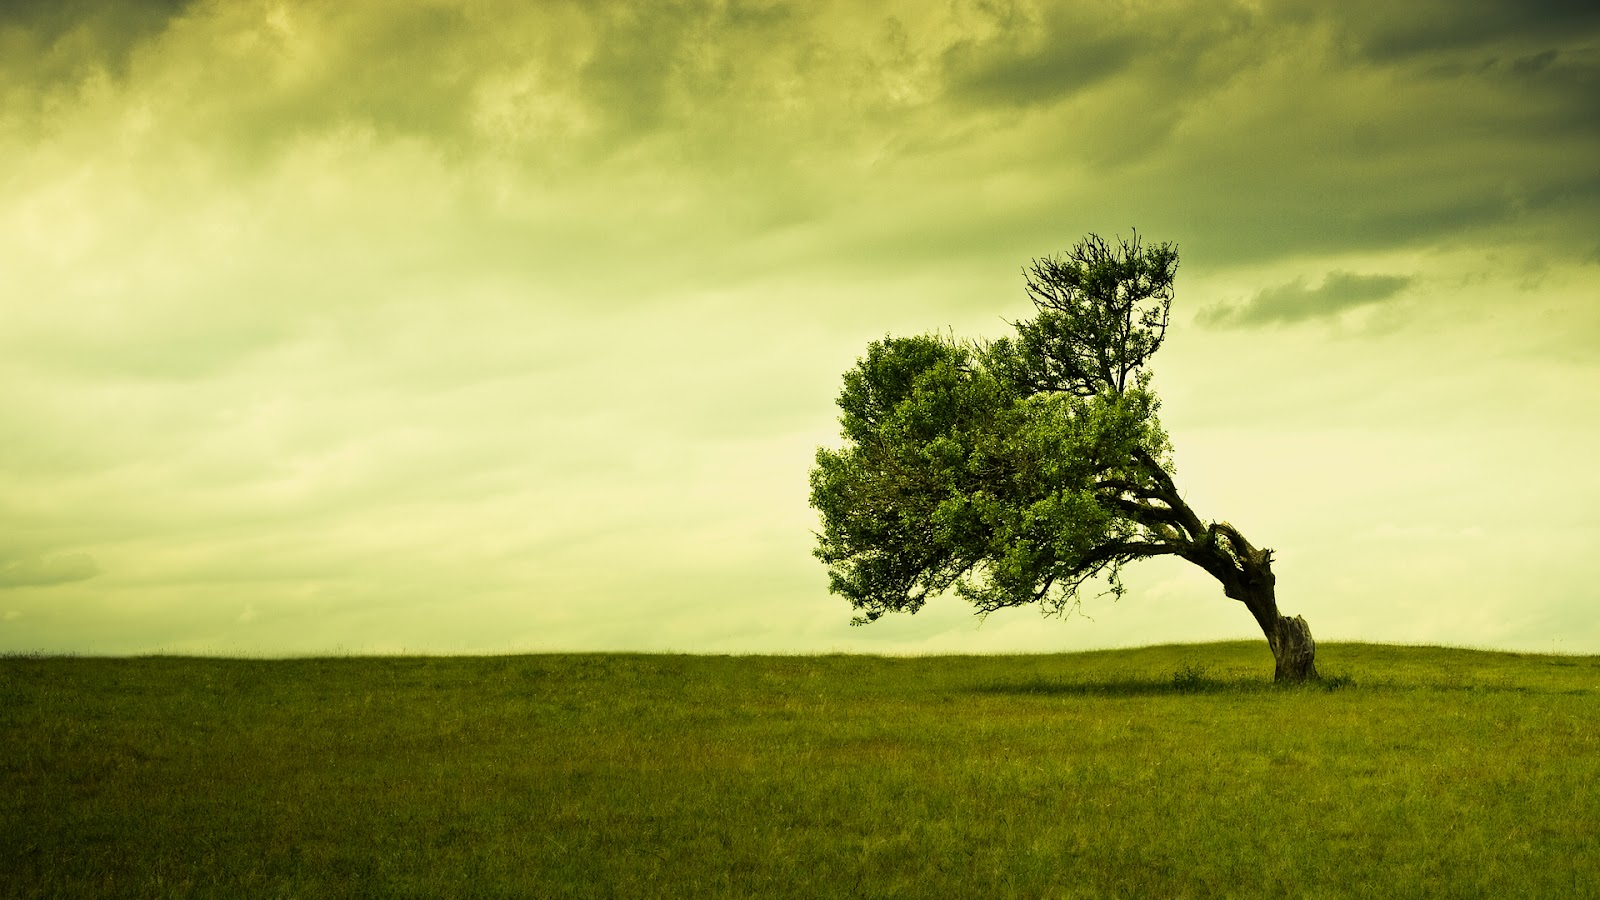 Hd tree background wallpapers free green trees photos for Tree wallpaper